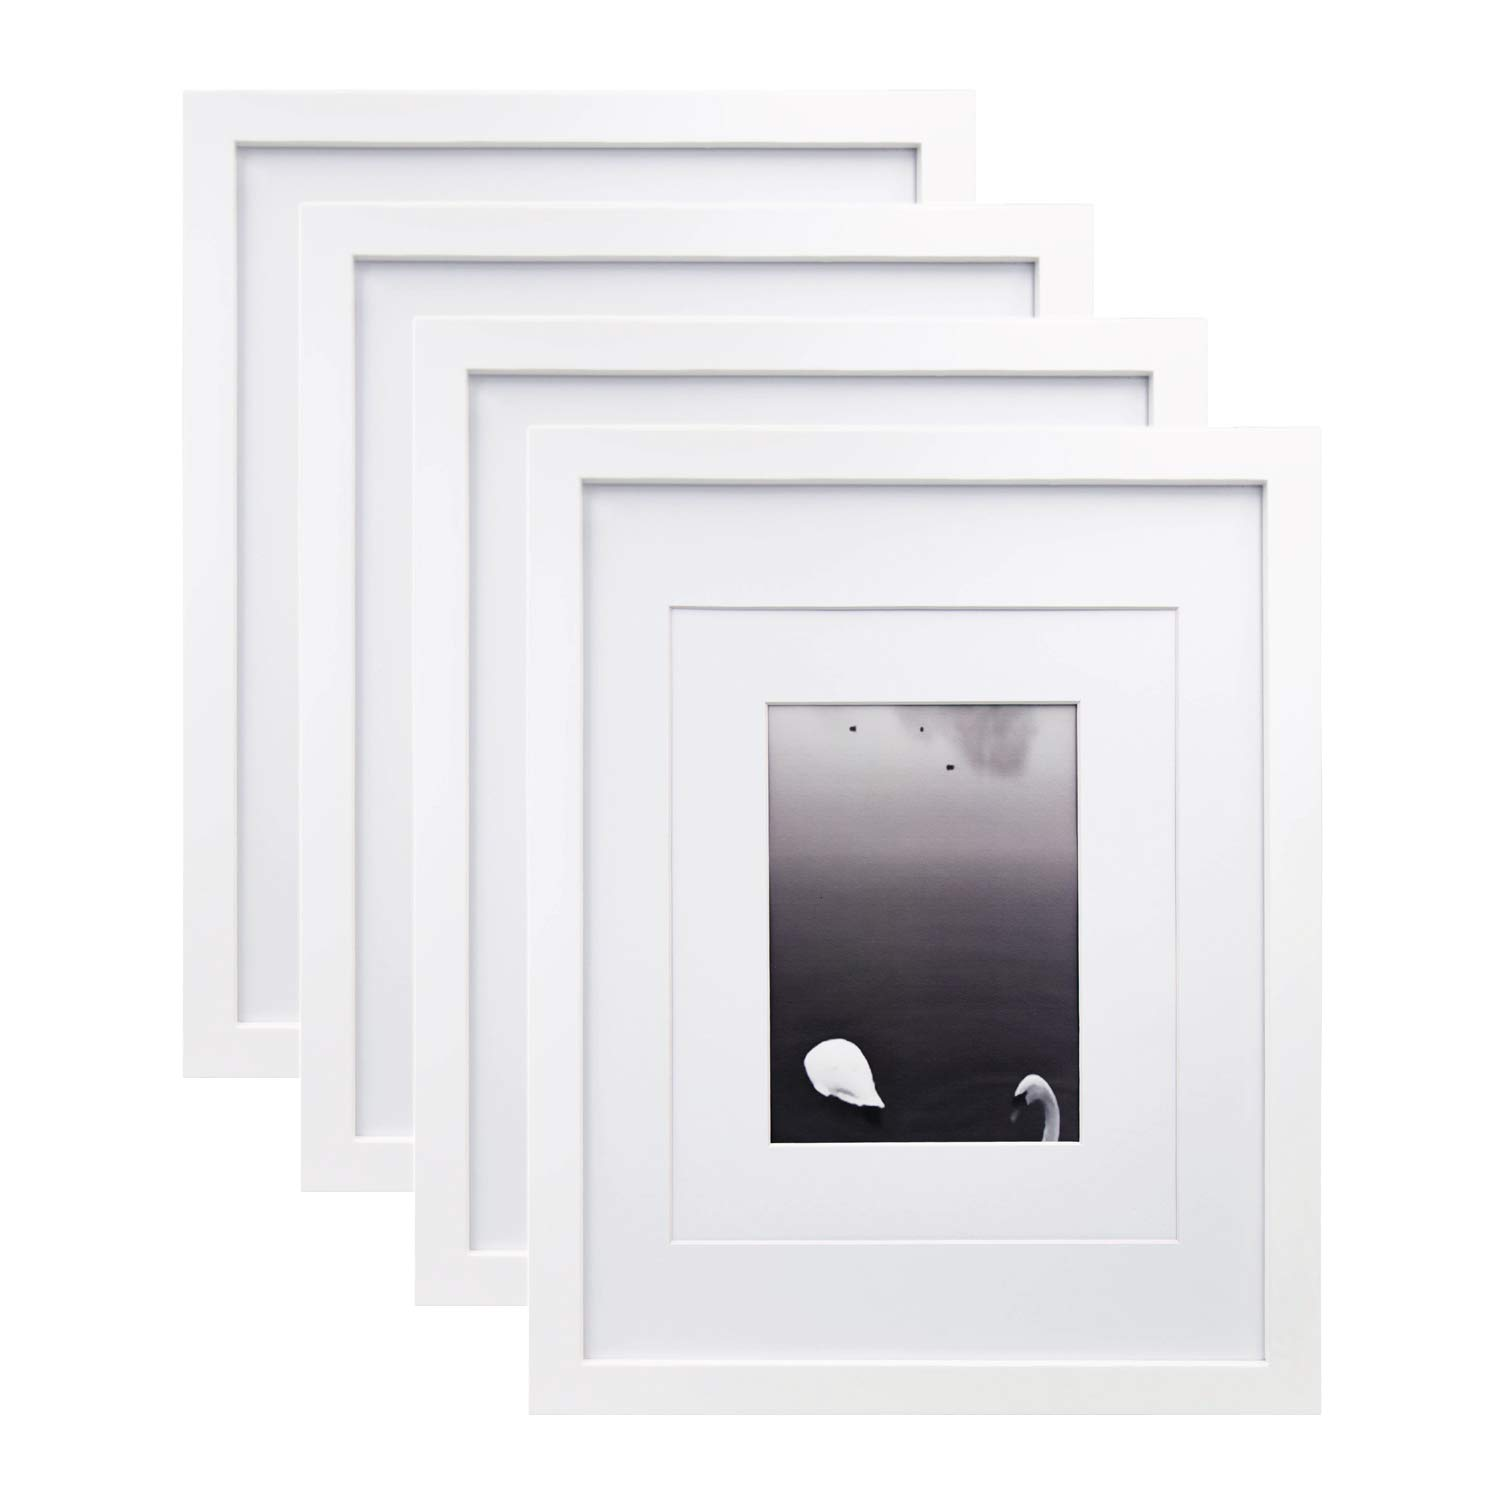 Egofine 11x14 Picture Frames 4 PCS White - Made of Solid Wood for Table Top and Wall Mounting for Pictures 8x10/5x7 with Mat Horizontally or Vertically Display Photo Frame White by Egofine